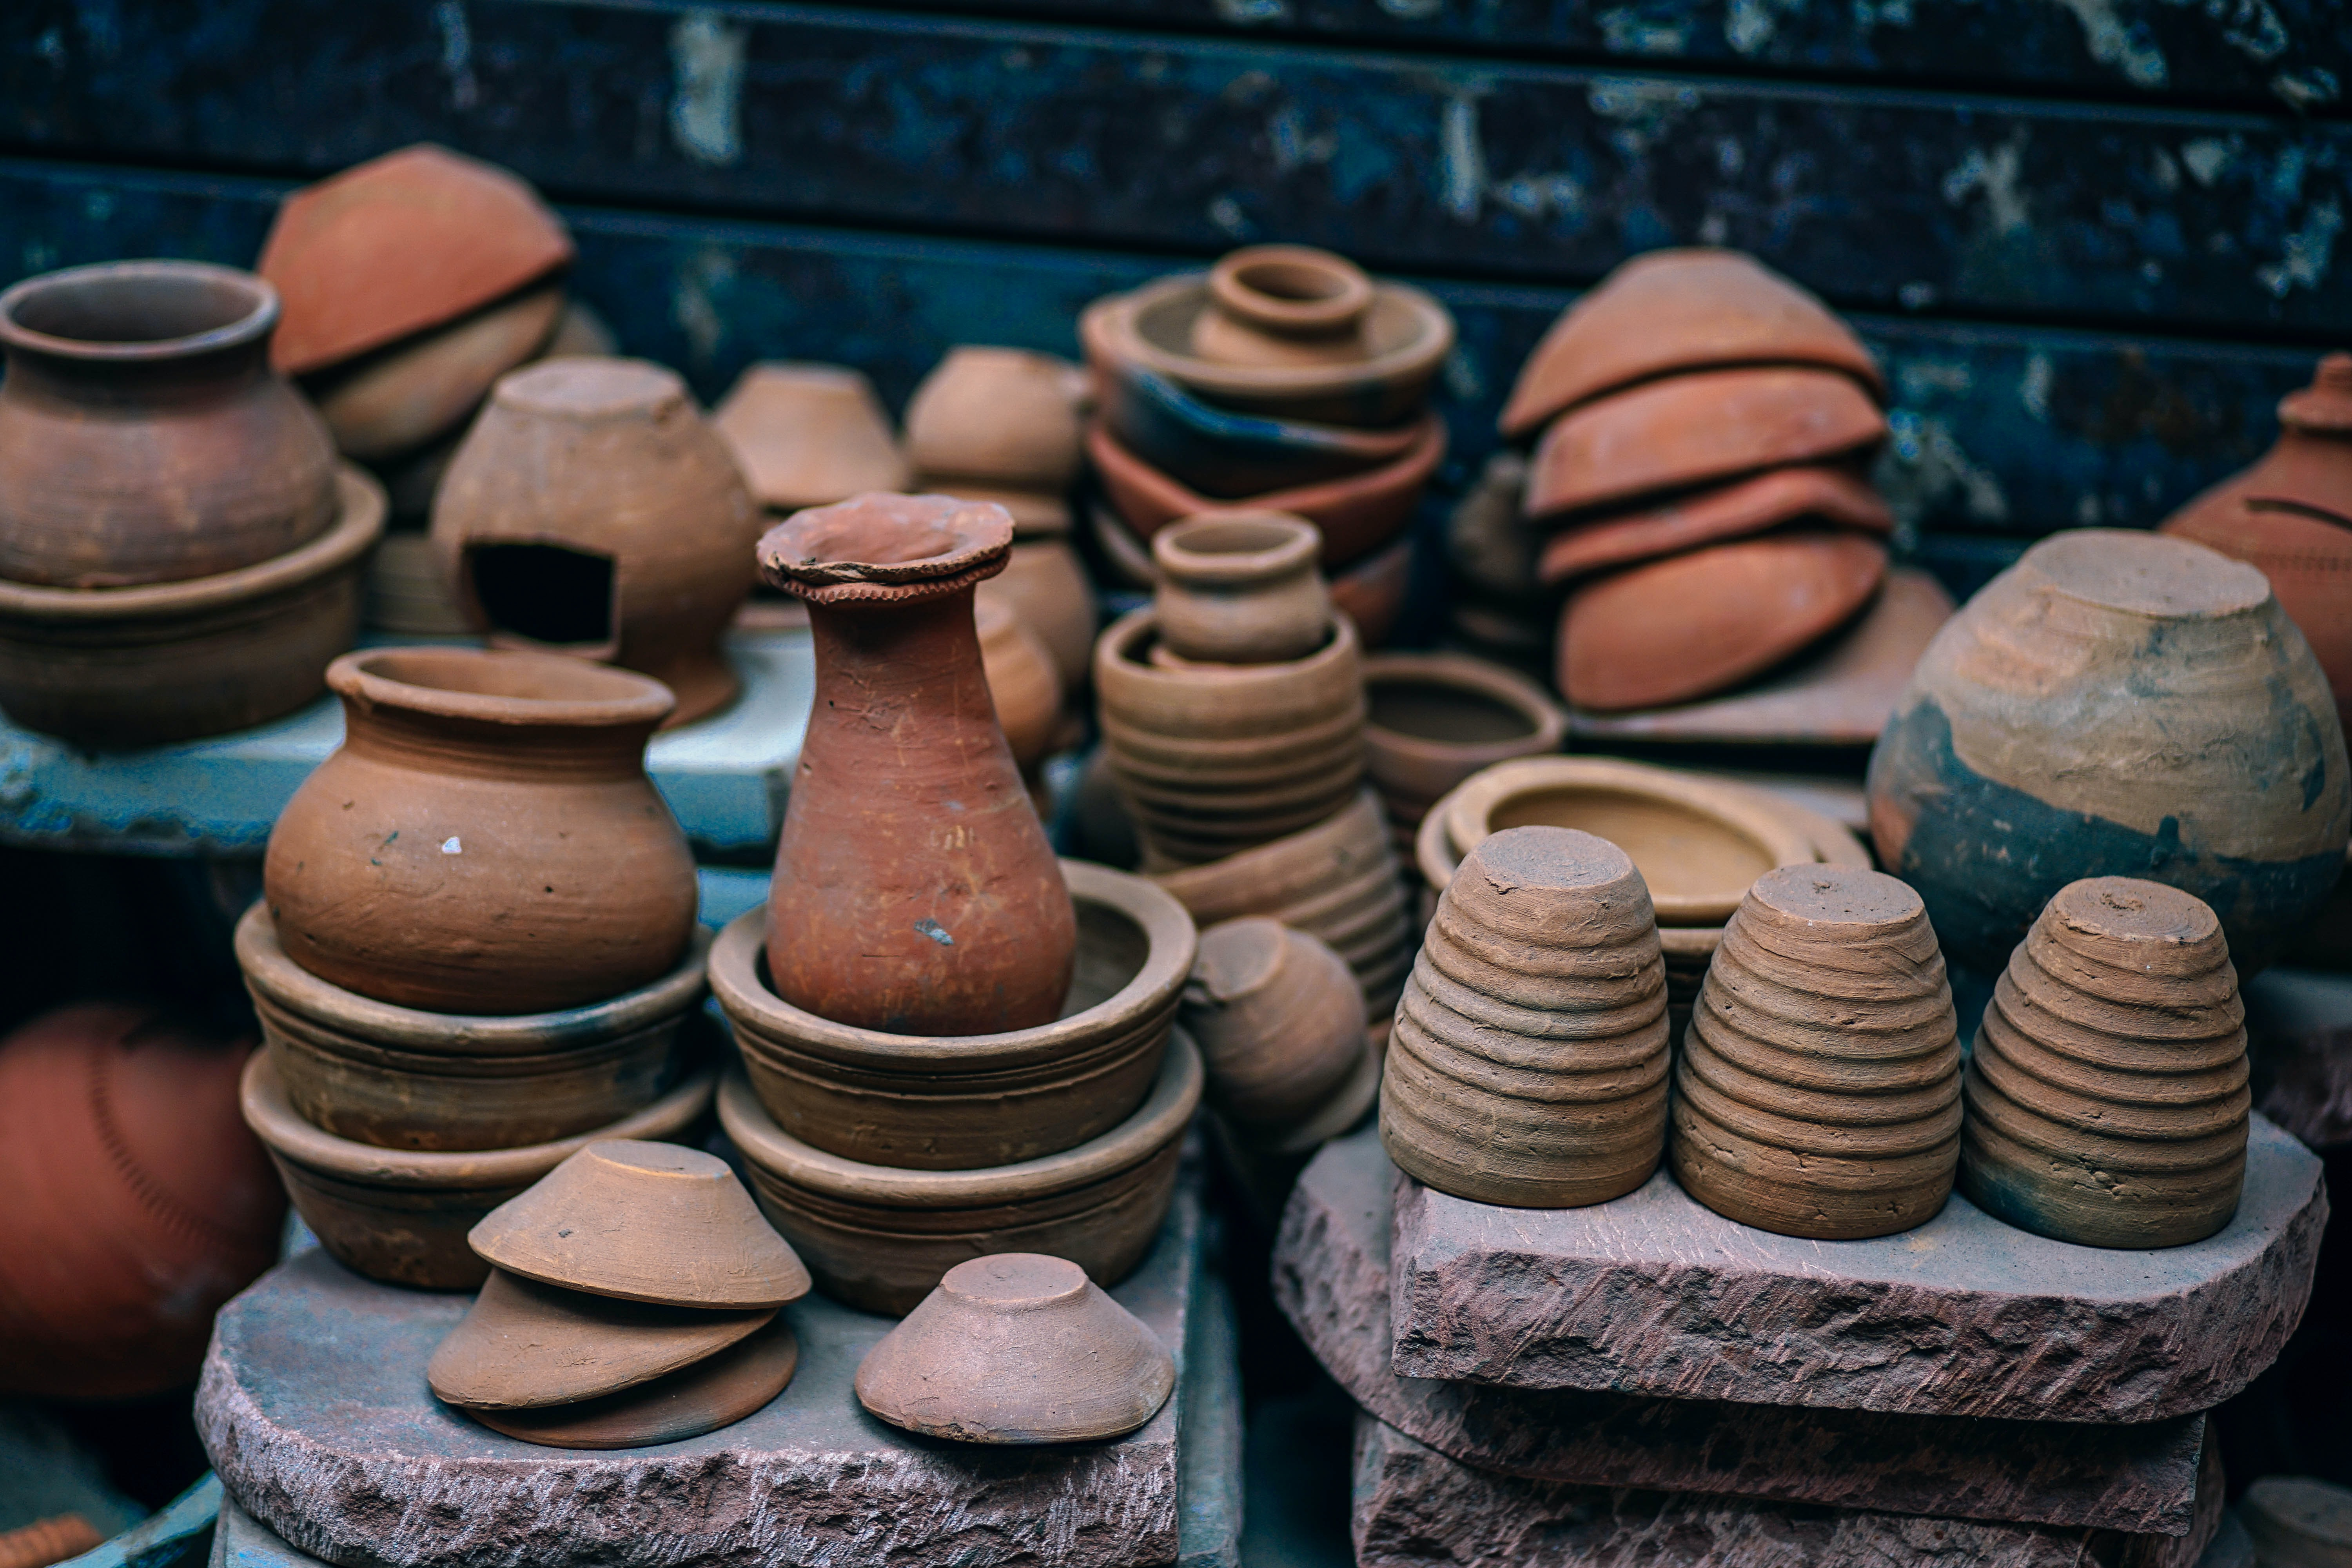 Stacks of pottery near a wall